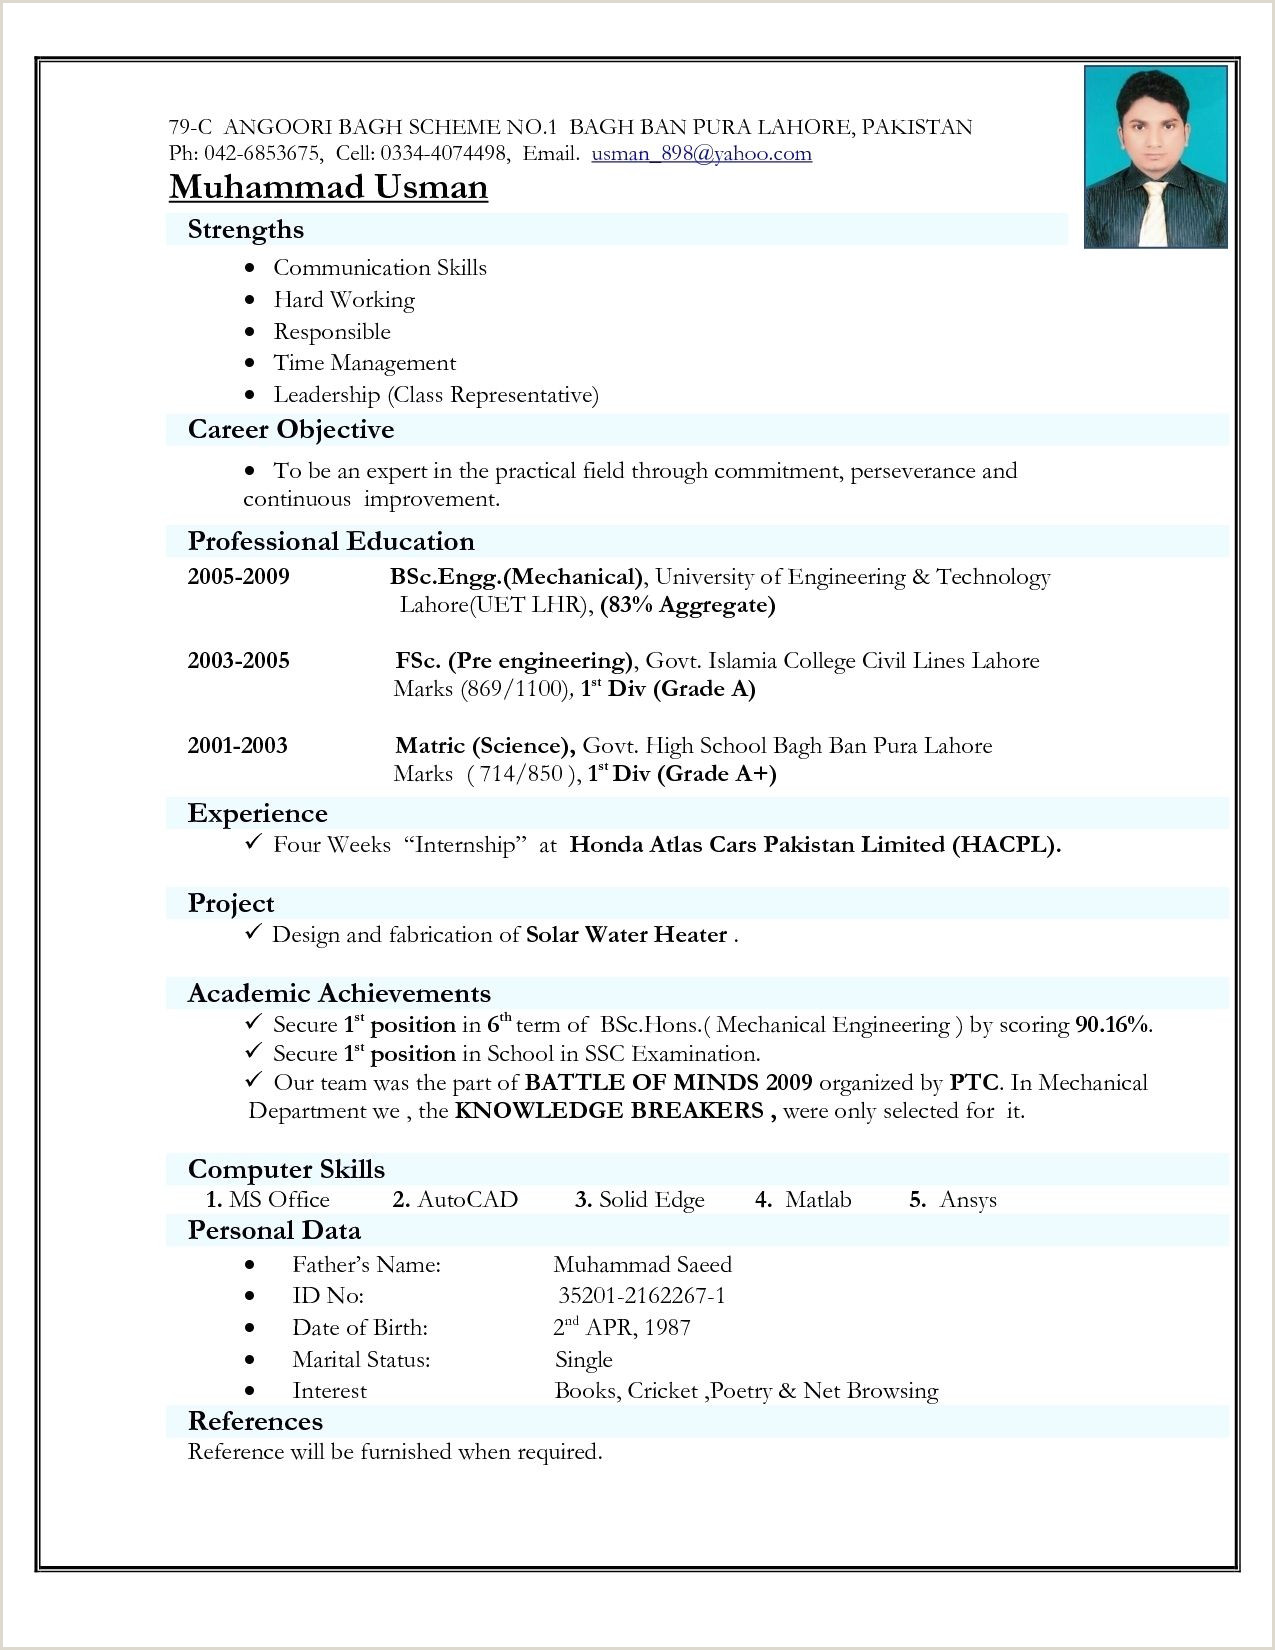 Fresher Resume format Download In Ms Word Download Resume format India D